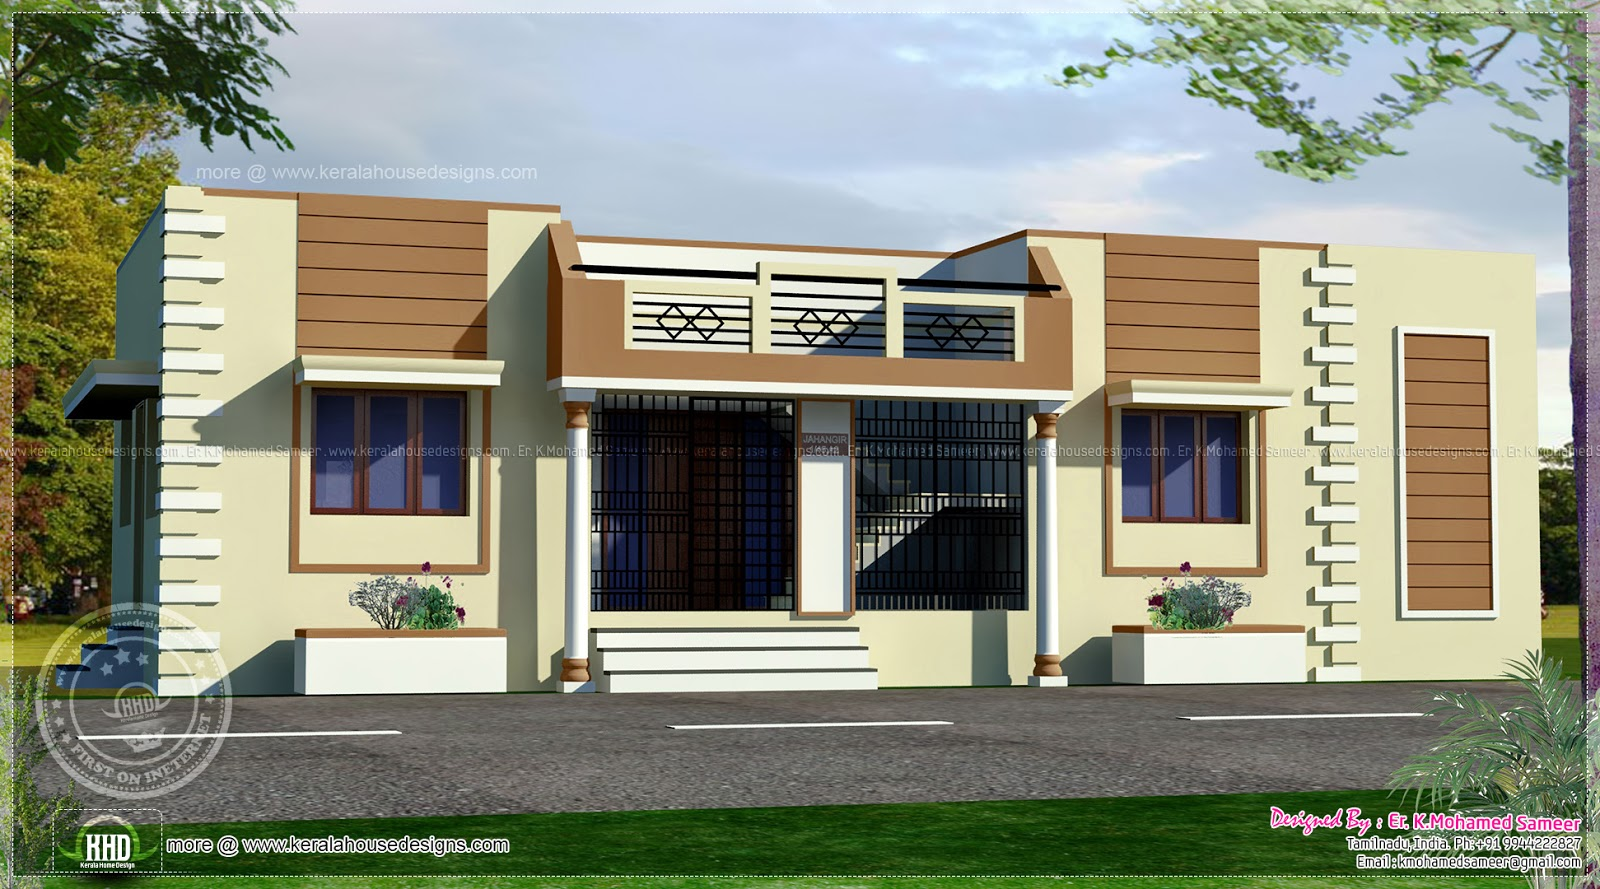 Tamilnadu style single floor home kerala home design and for Home models in tamilnadu pictures